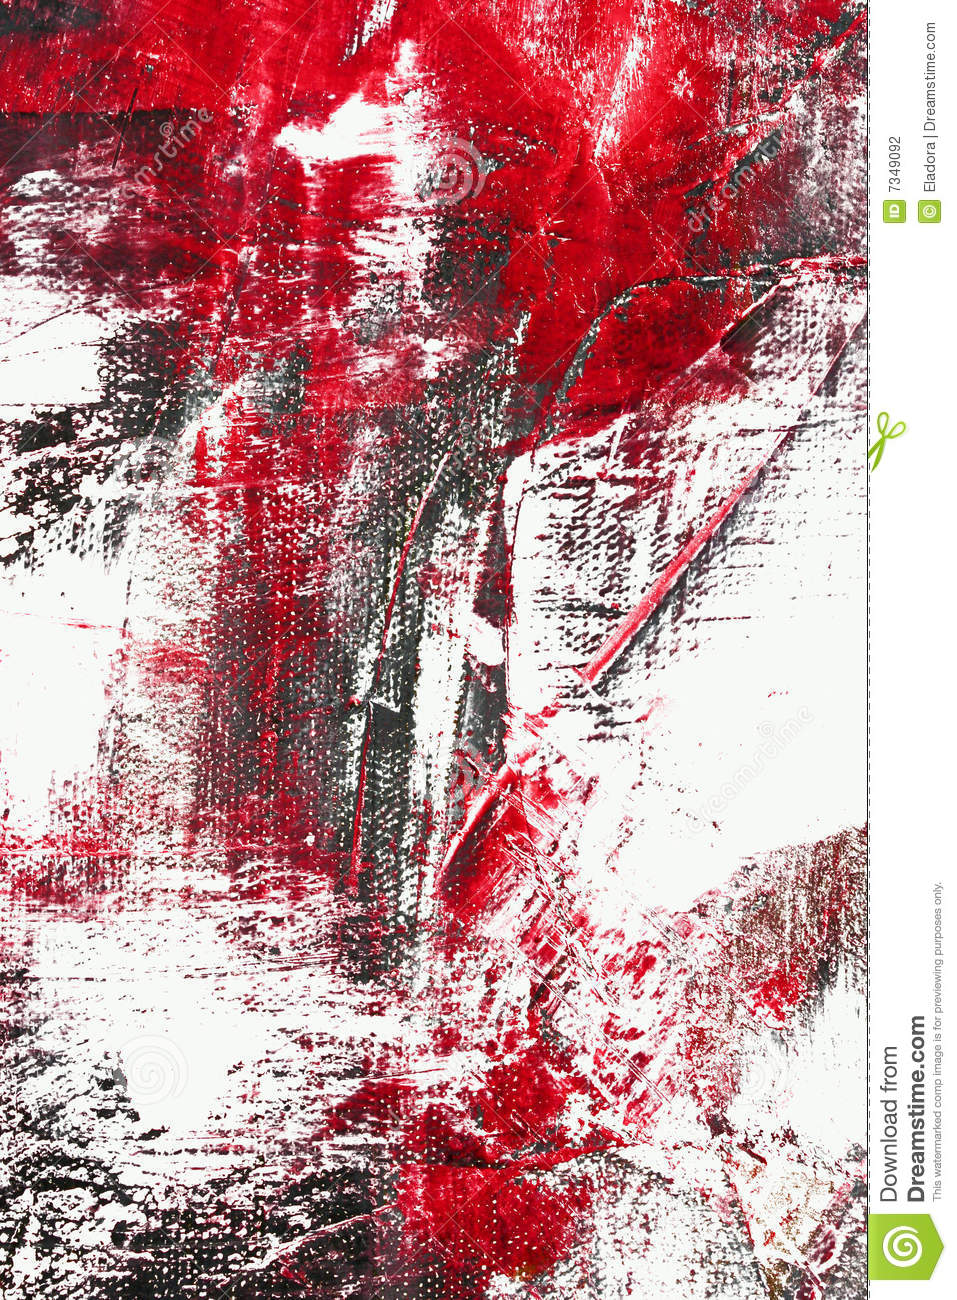 map of newjersey with Stock Photography Red Black Color Abstract Image7349092 on Cherry Hill likewise 1257 Alta  Norway besides 6241280319 further Nj Bellemead together with Silly Simpsons Springfield Springfield Its A Hell Of Town.